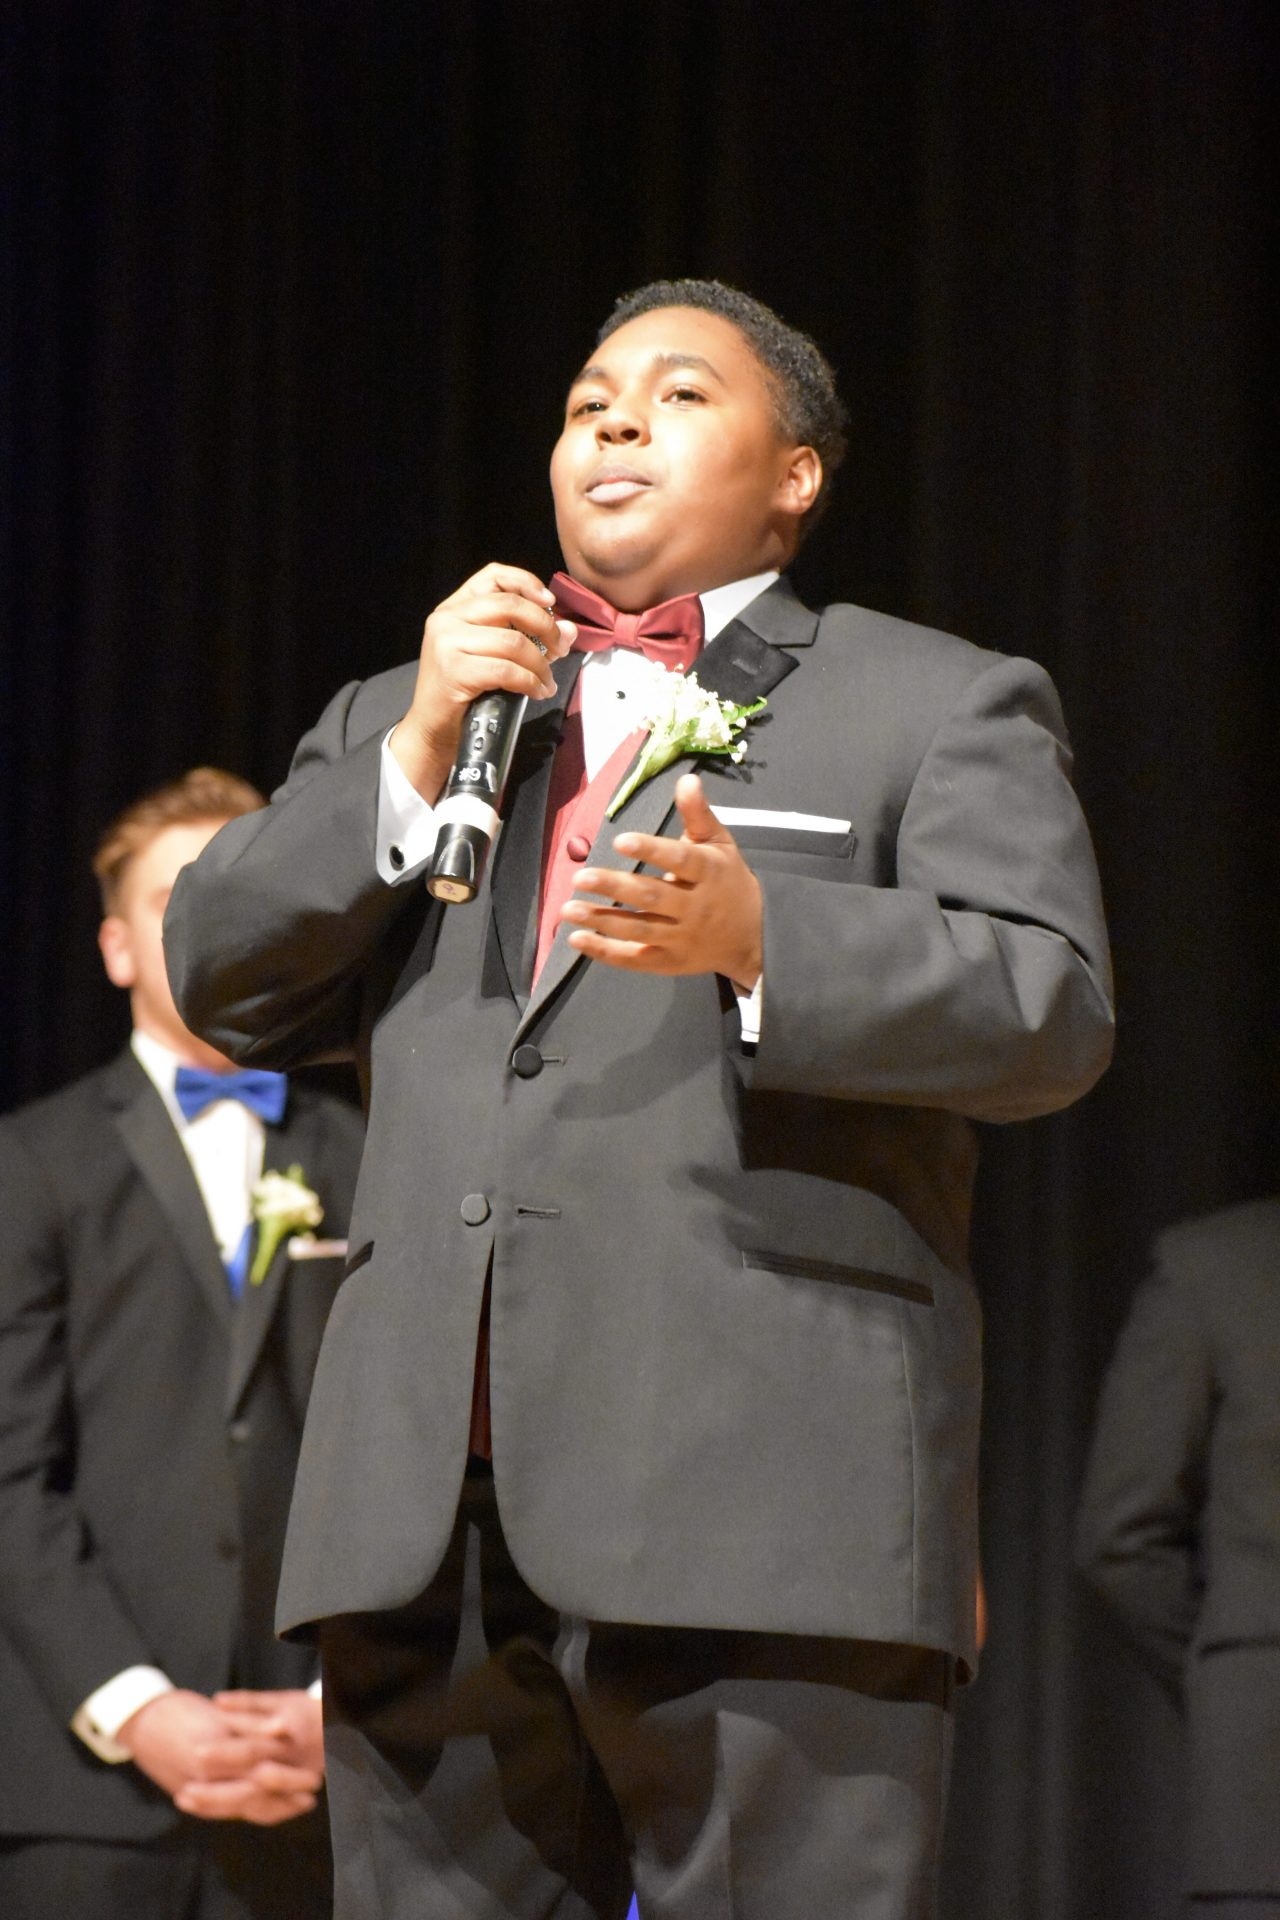 Jhona Coombs speaking during formal Mr. Voc Tech segment